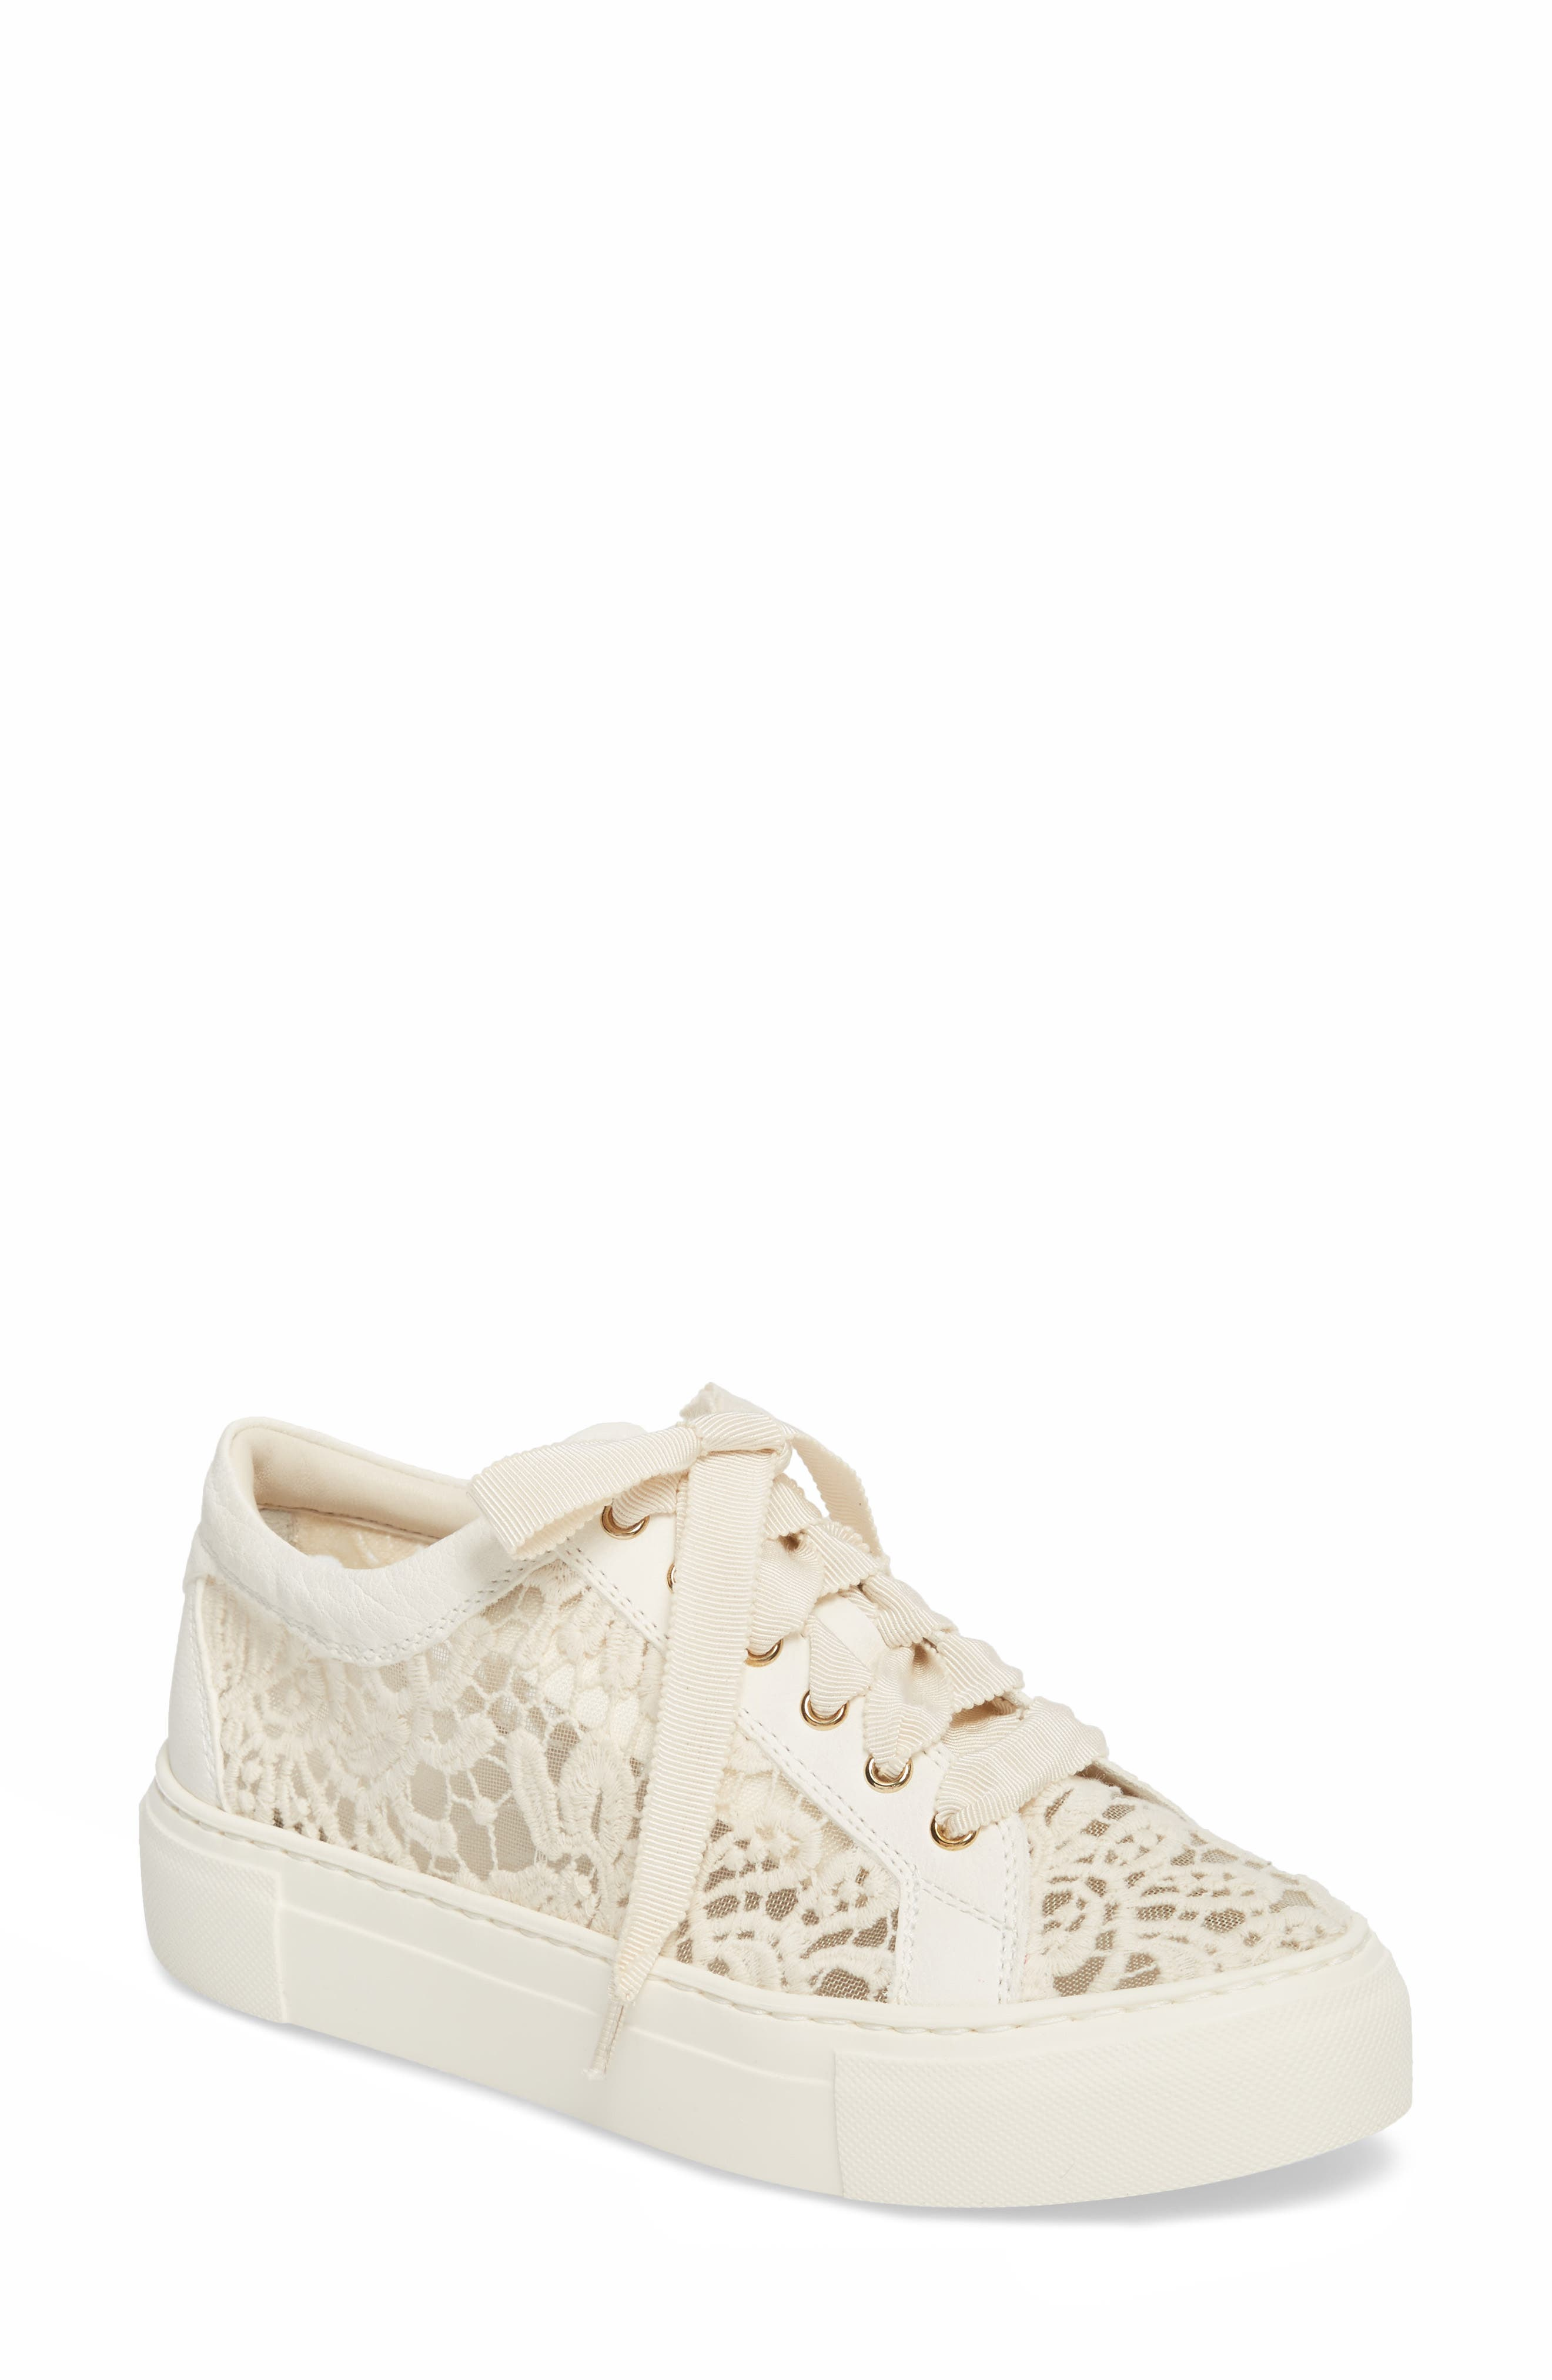 EMBROIDERED LACE SNEAKER